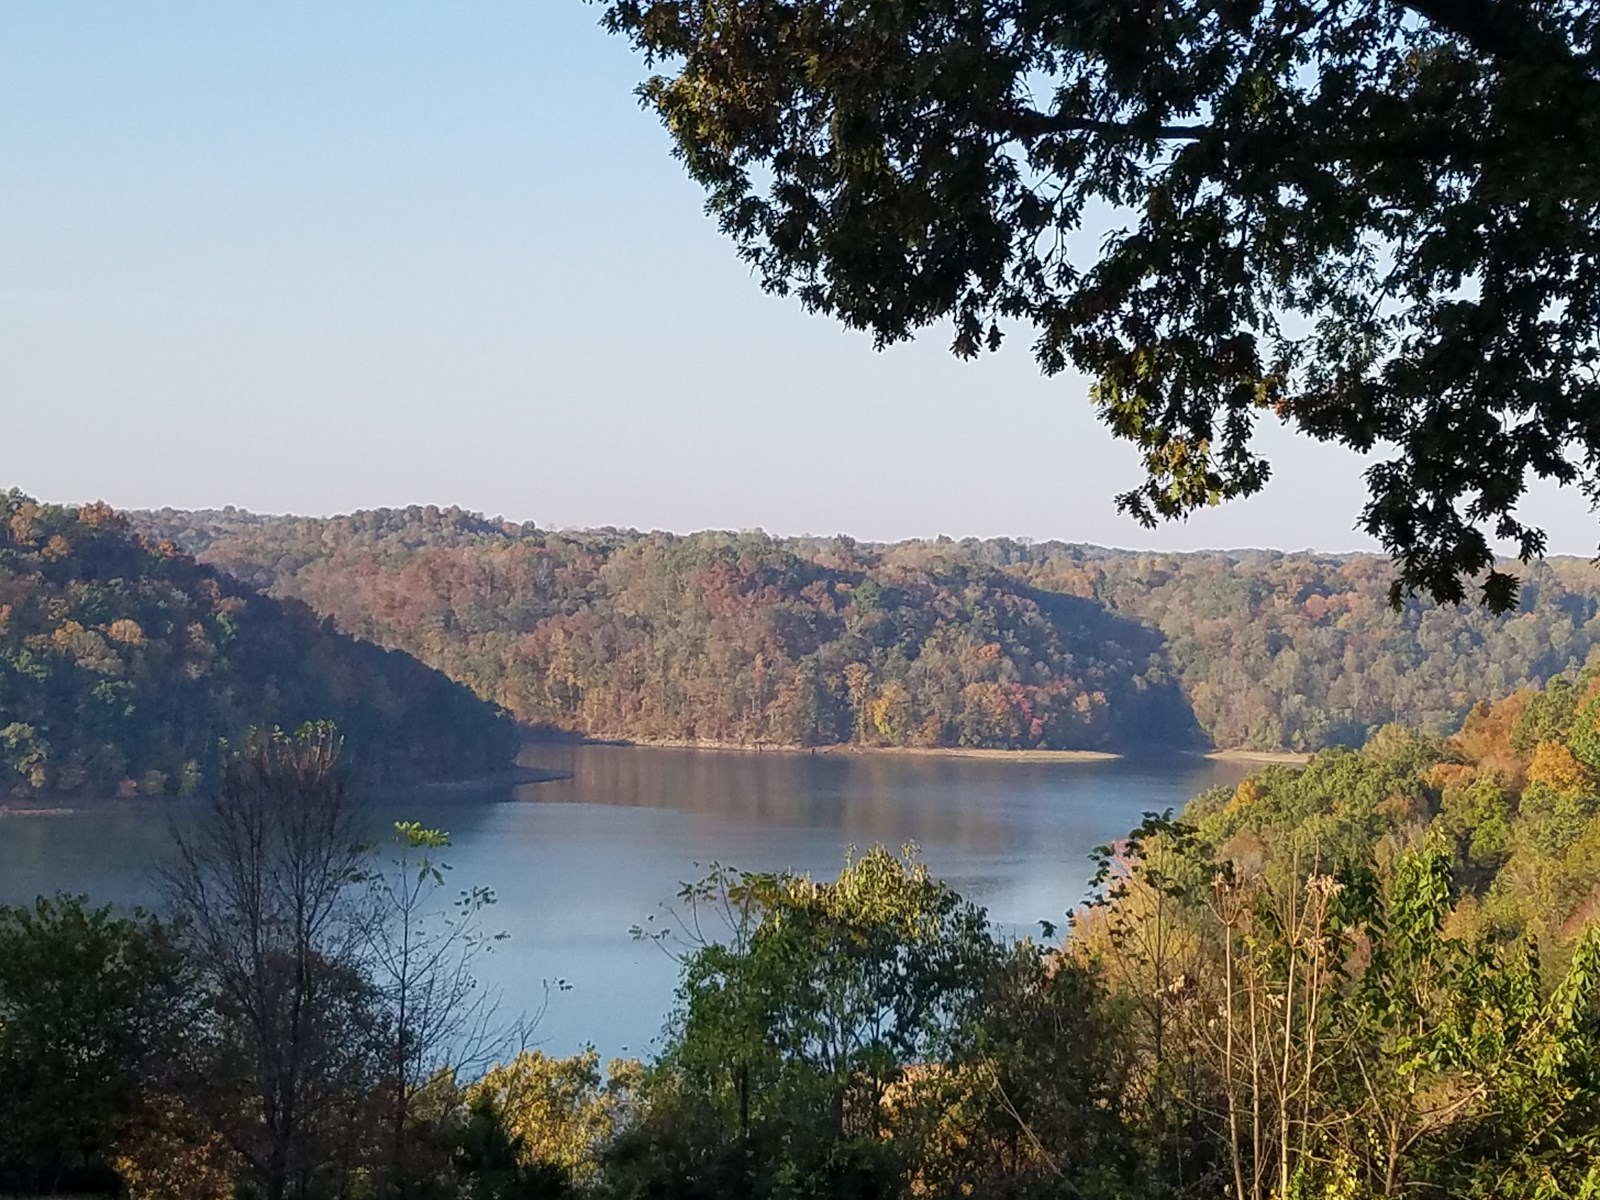 Home for sale with lake views, Albany, Kentucky